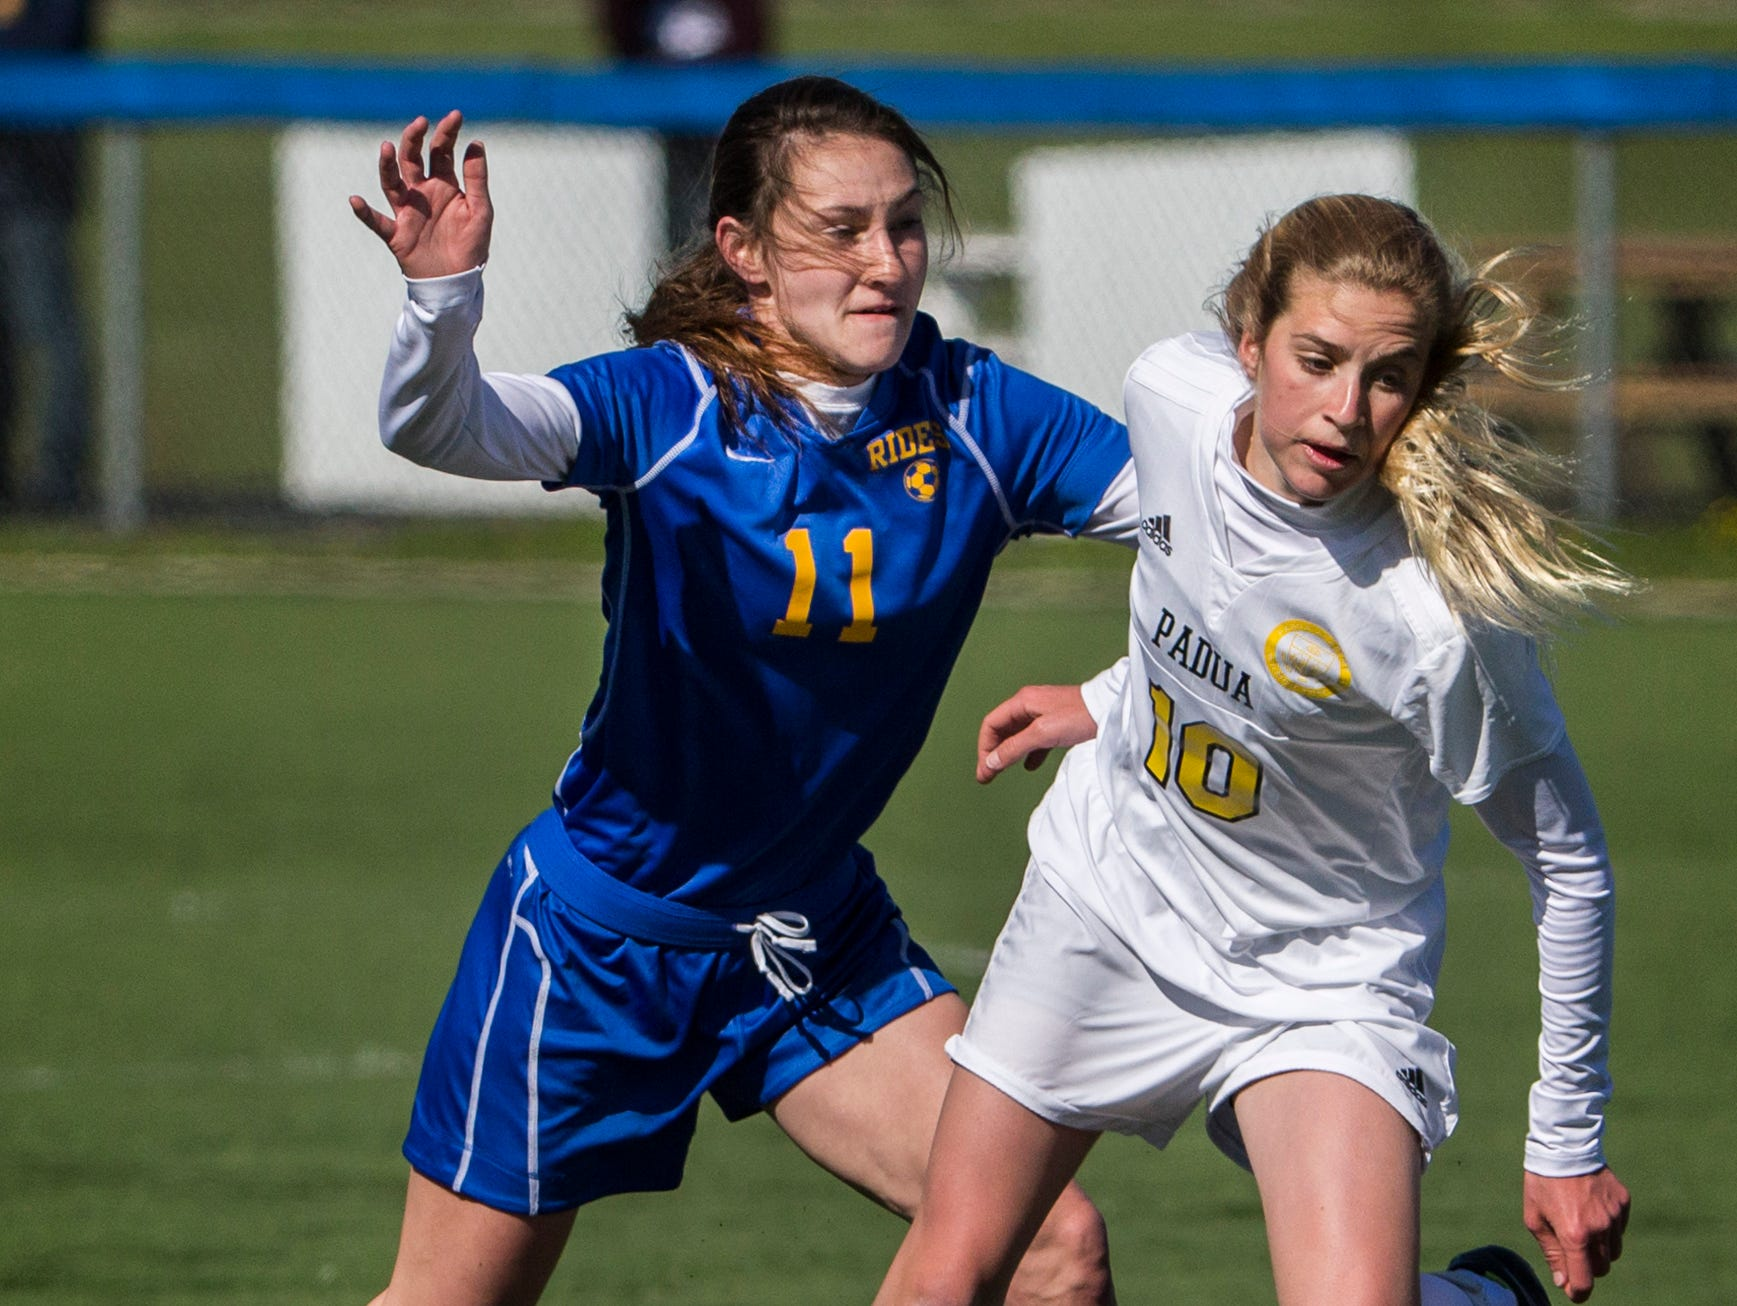 Padua's Ashlee Brentlinger (right) works the ball past Caesar Rodney's Cowan Cummings (left) in the first half of Padua's 2-0 win over Caesar Rodney at the Hockessin Soccer Club on Tuesday afternoon.